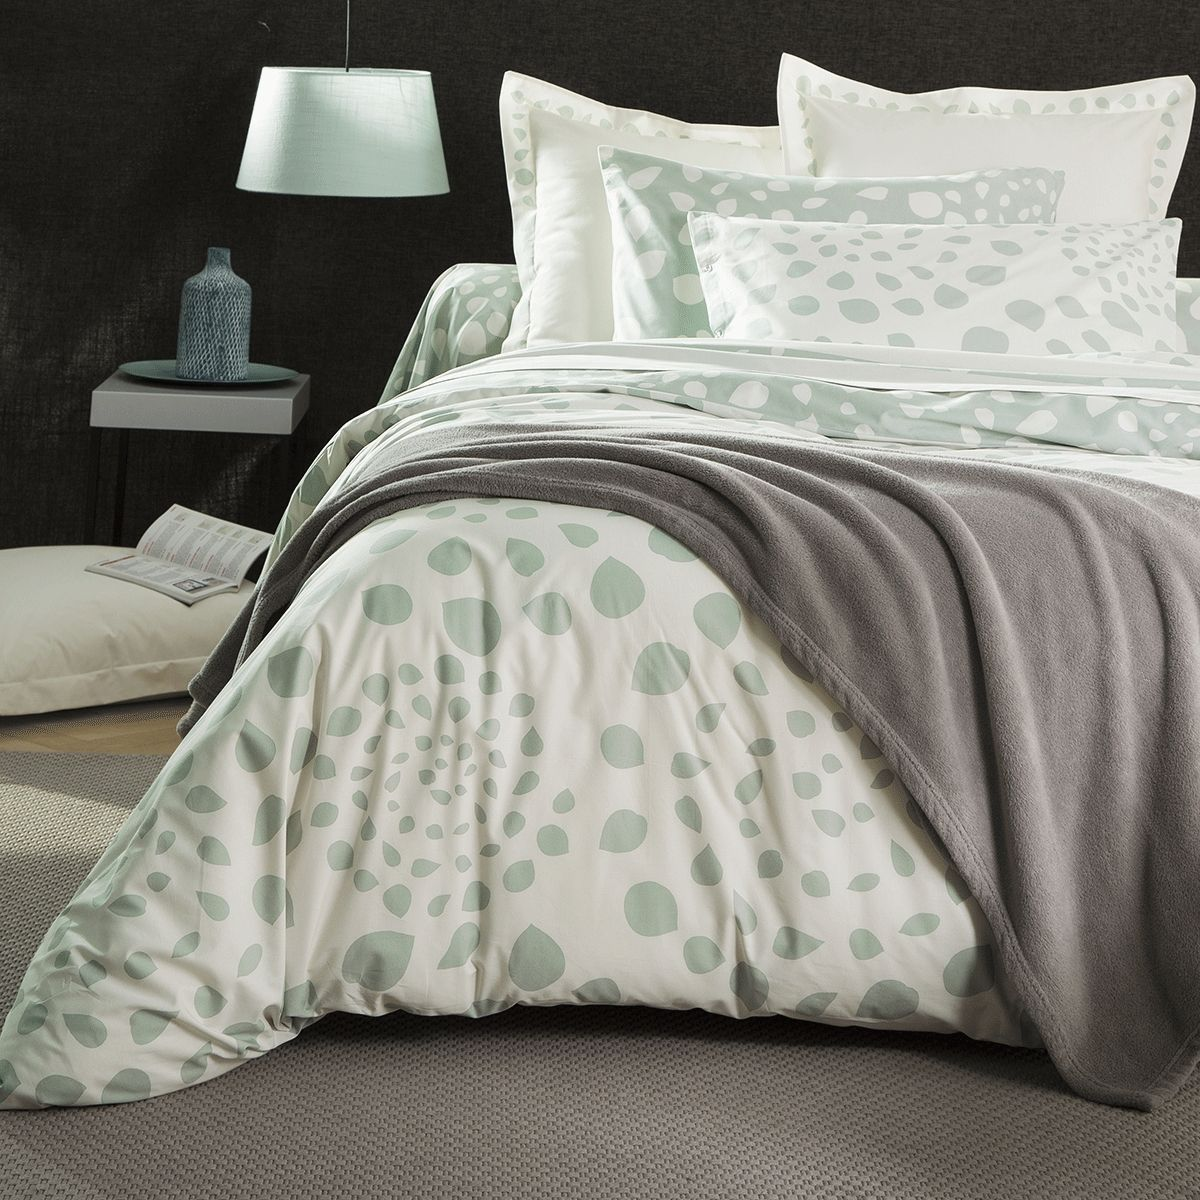 Fitted Sheet Blossom Fall